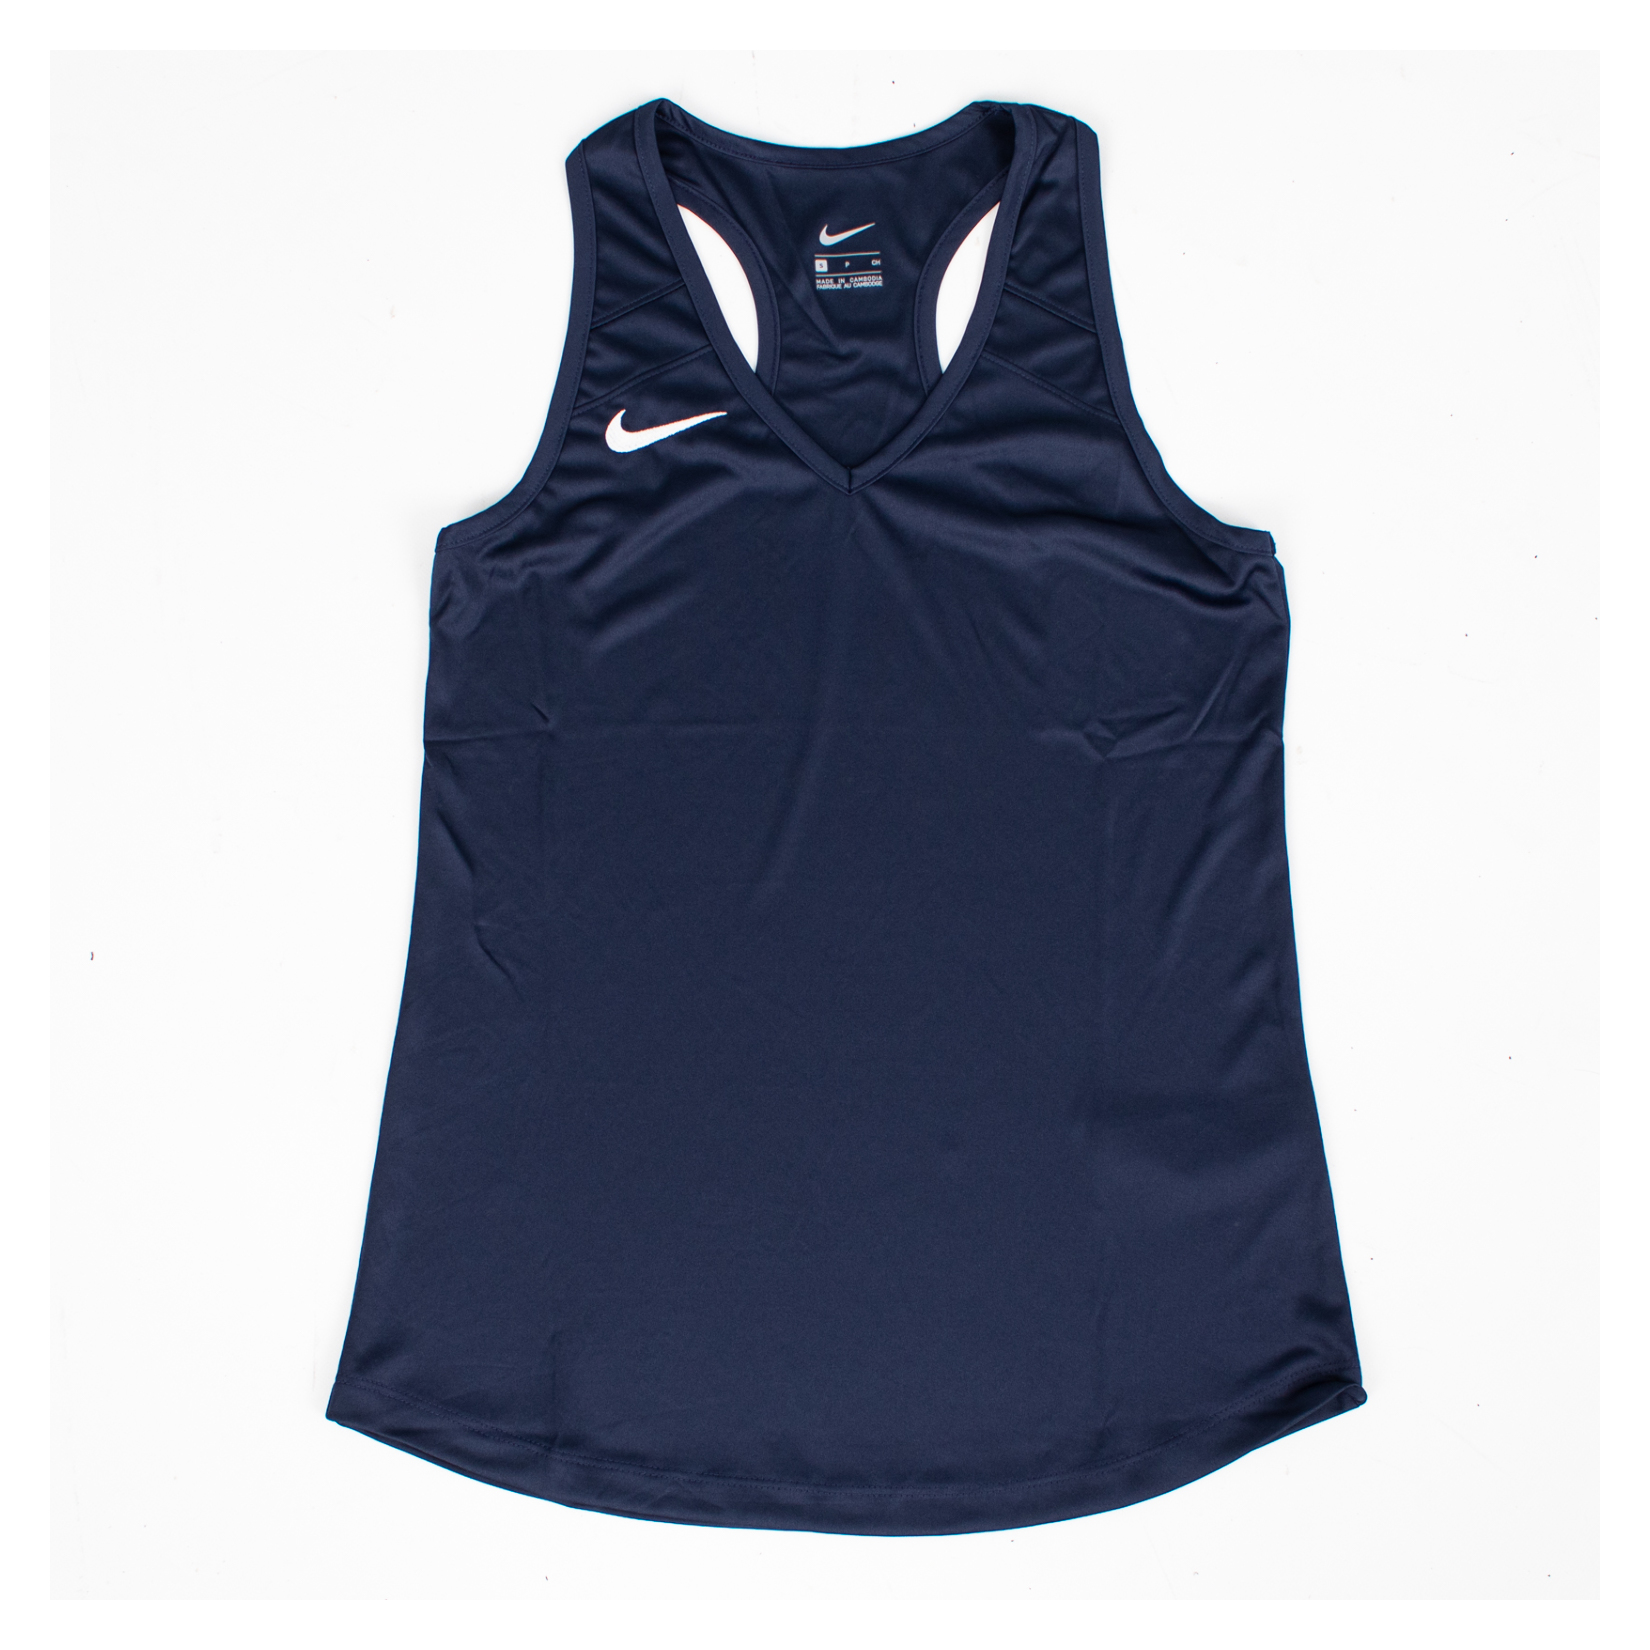 Neon-Nike Womens Performance Tank